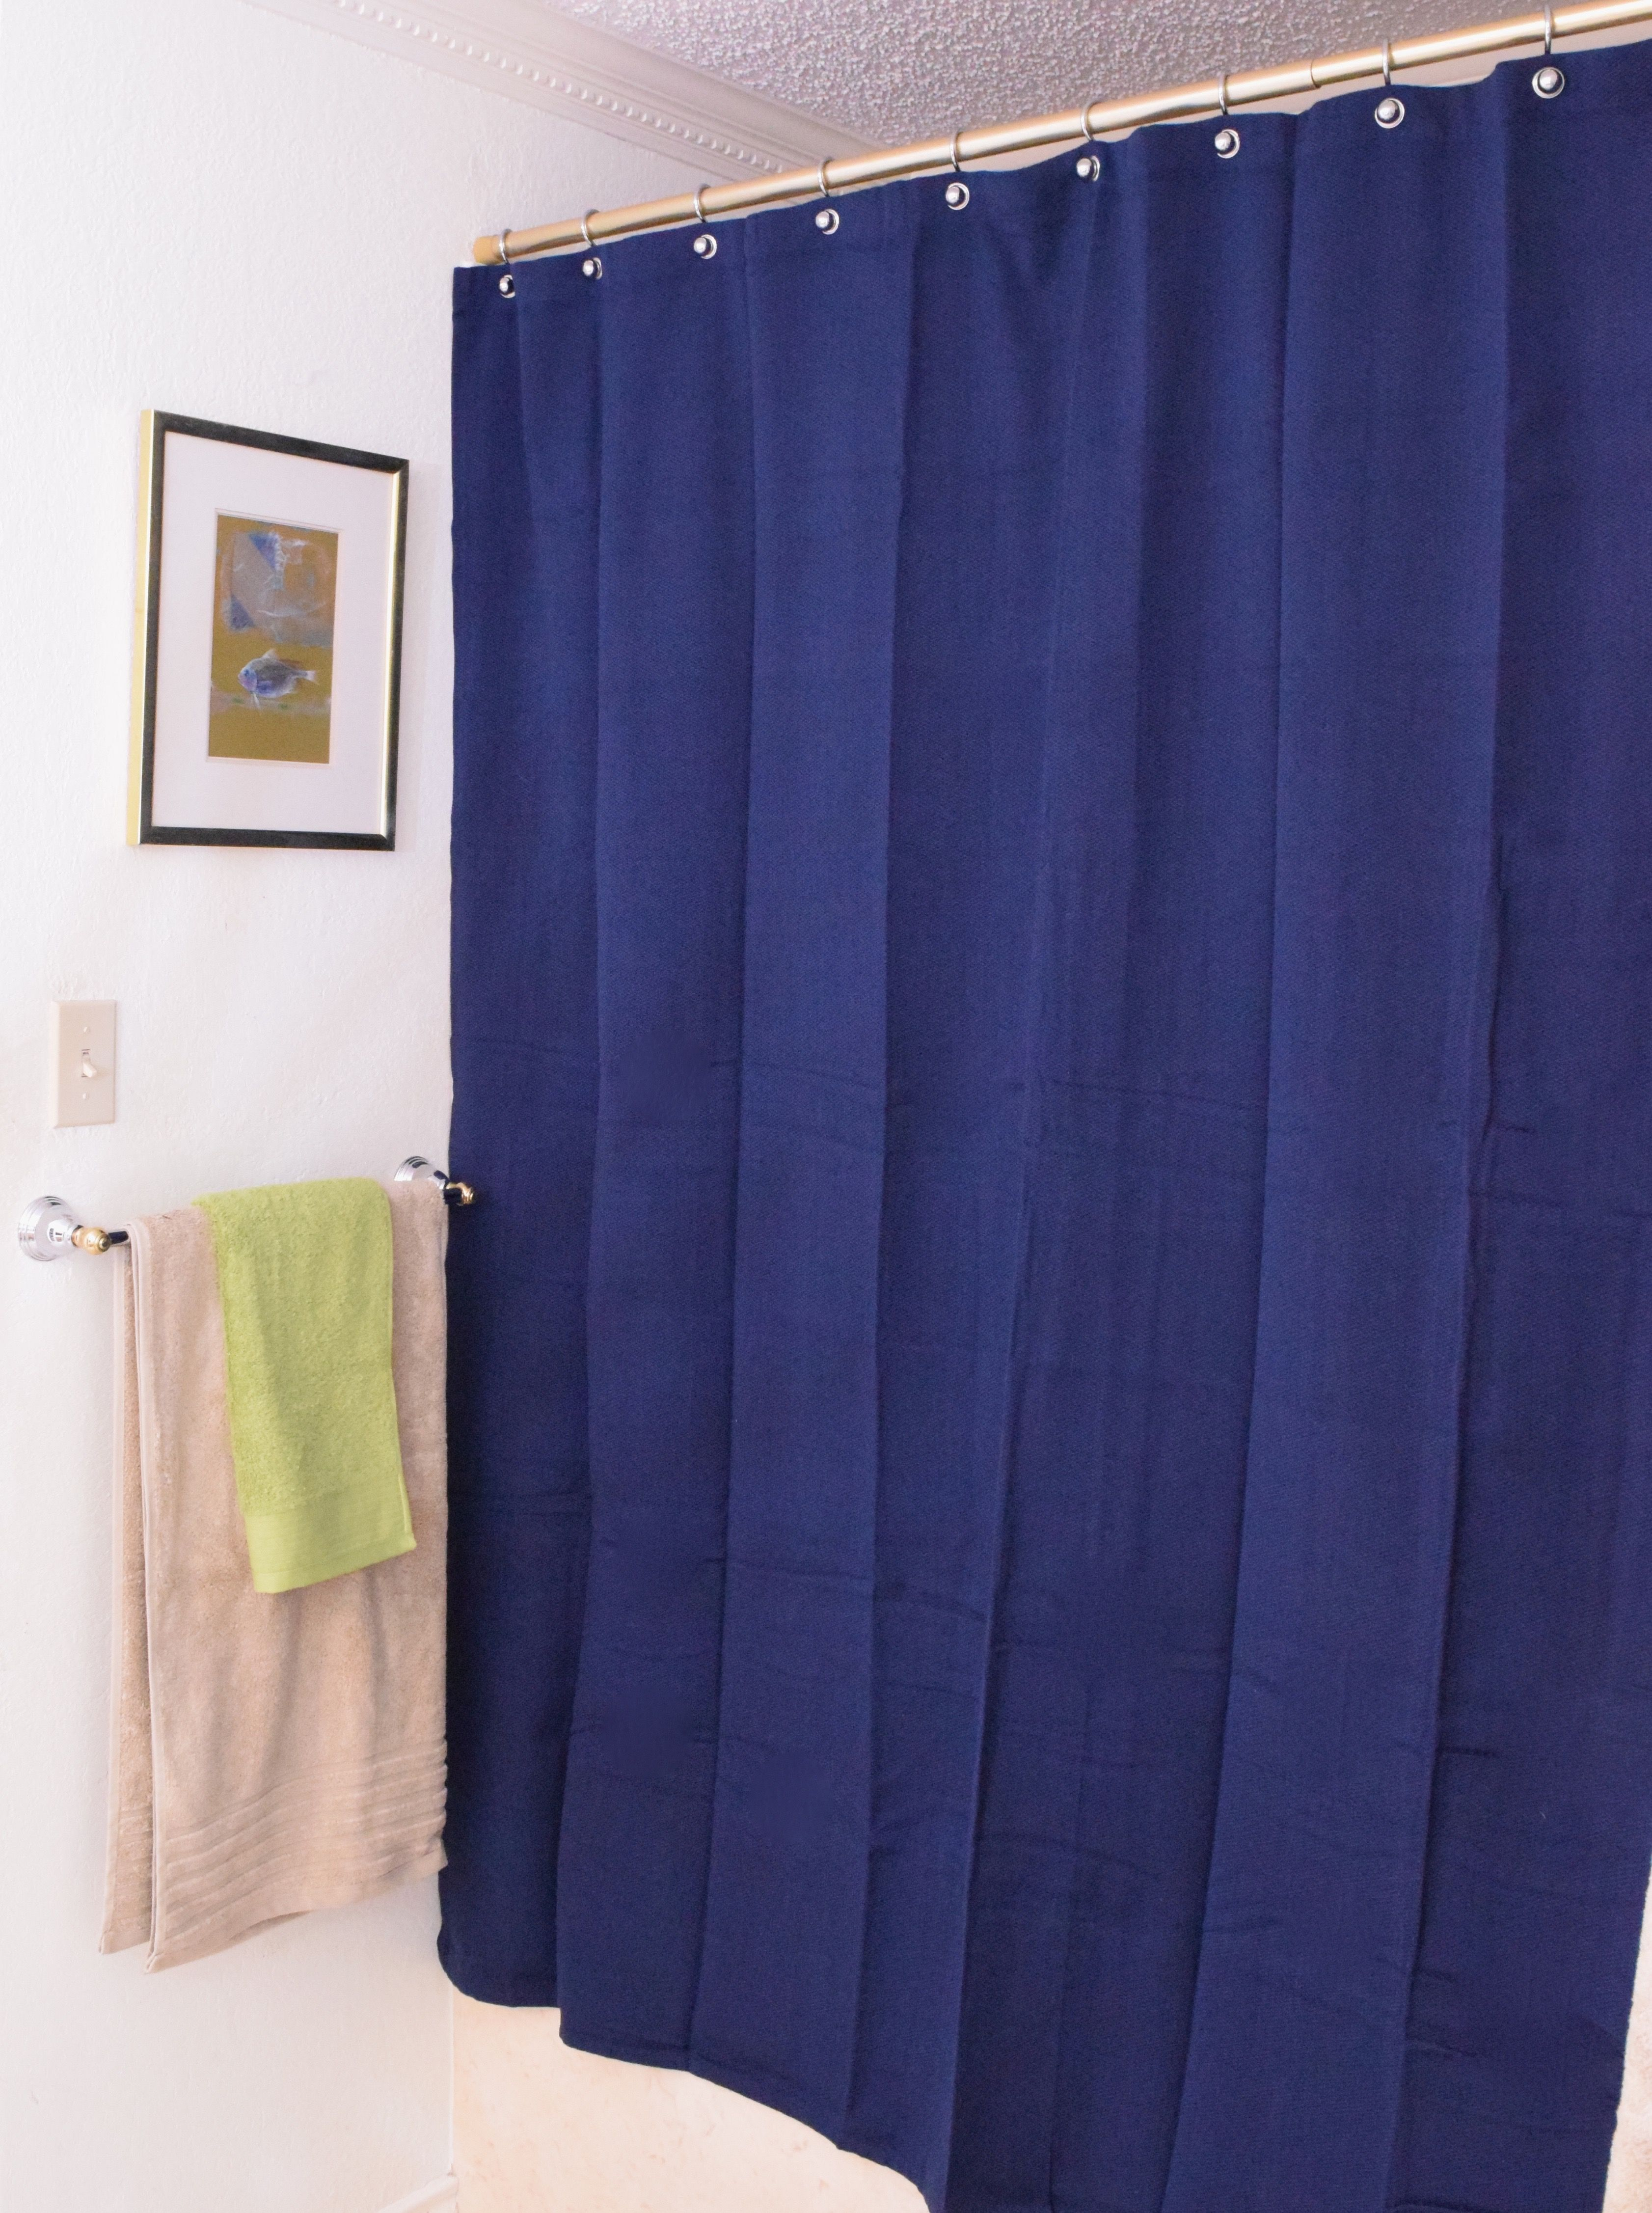 Bathroom Makeover   Start With The Shower Curtain. #tuesdaymorning